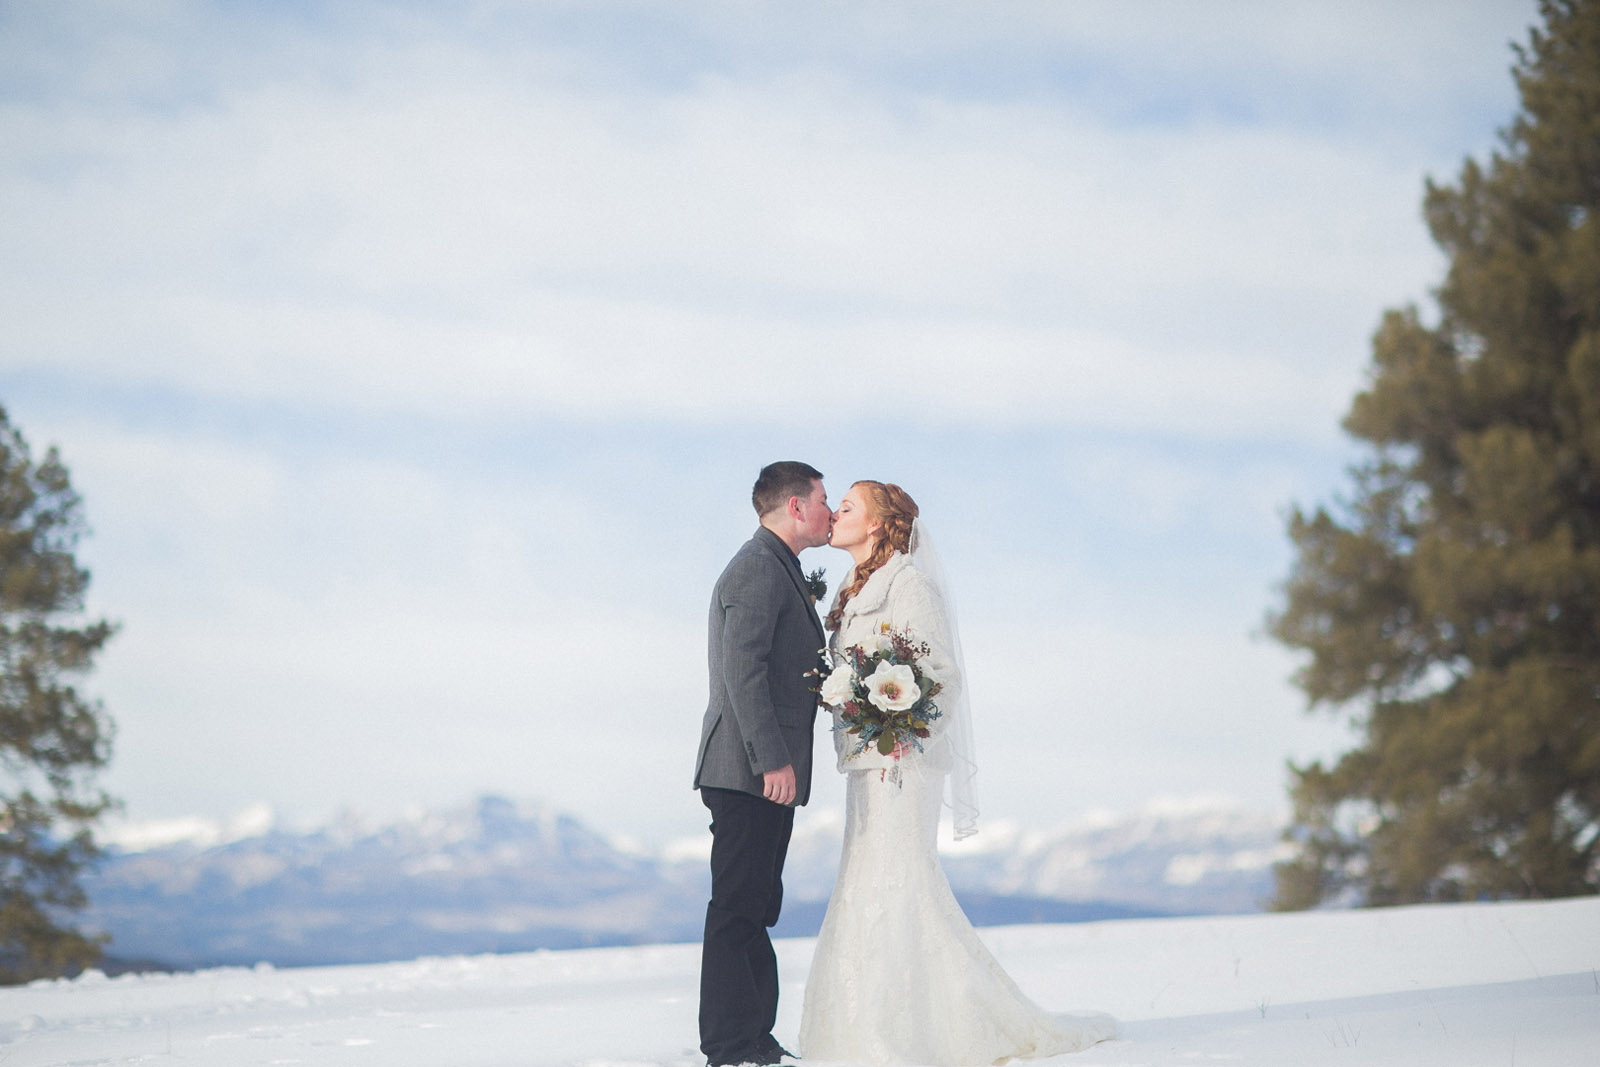 137-wedding-photographer-captures-newlyweds-in-snow-during-a-winter-snow-wedding-in-the-mountains-in-colorado